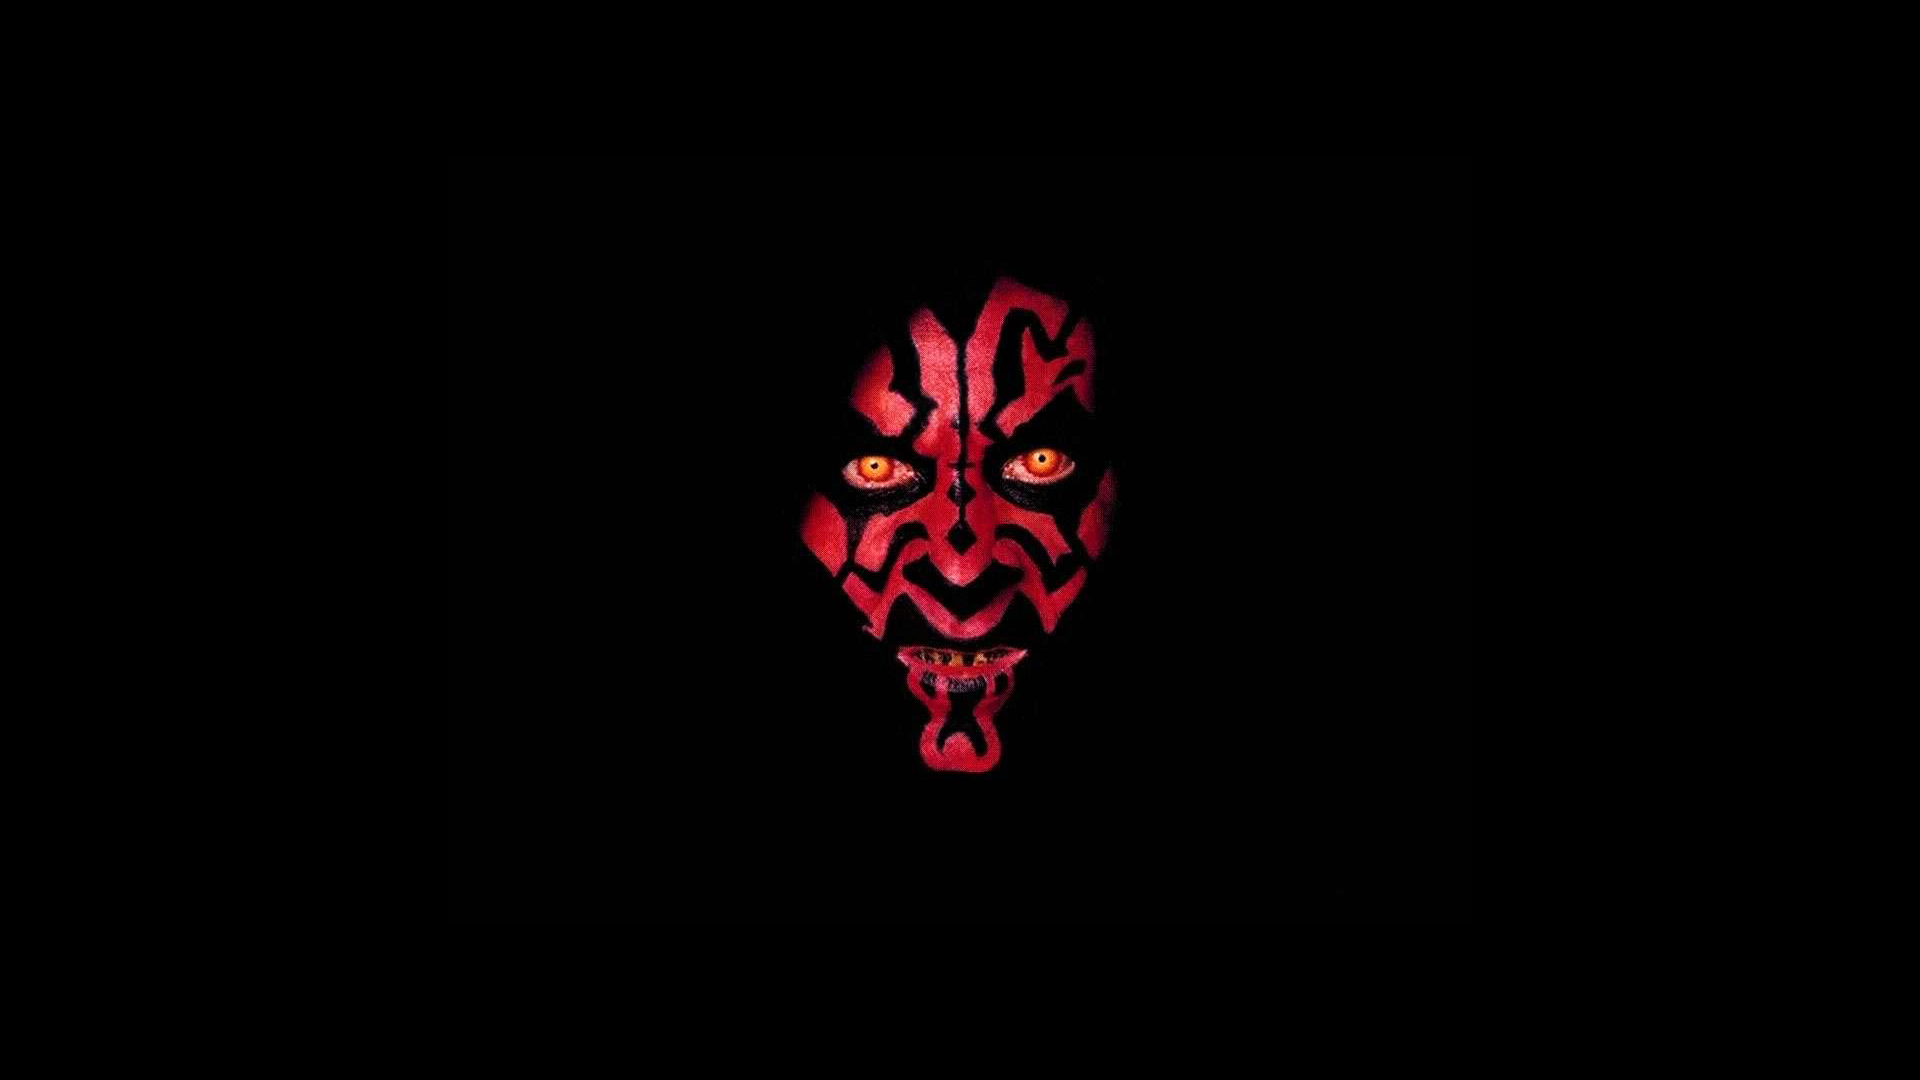 Darth Maul Wallpaper